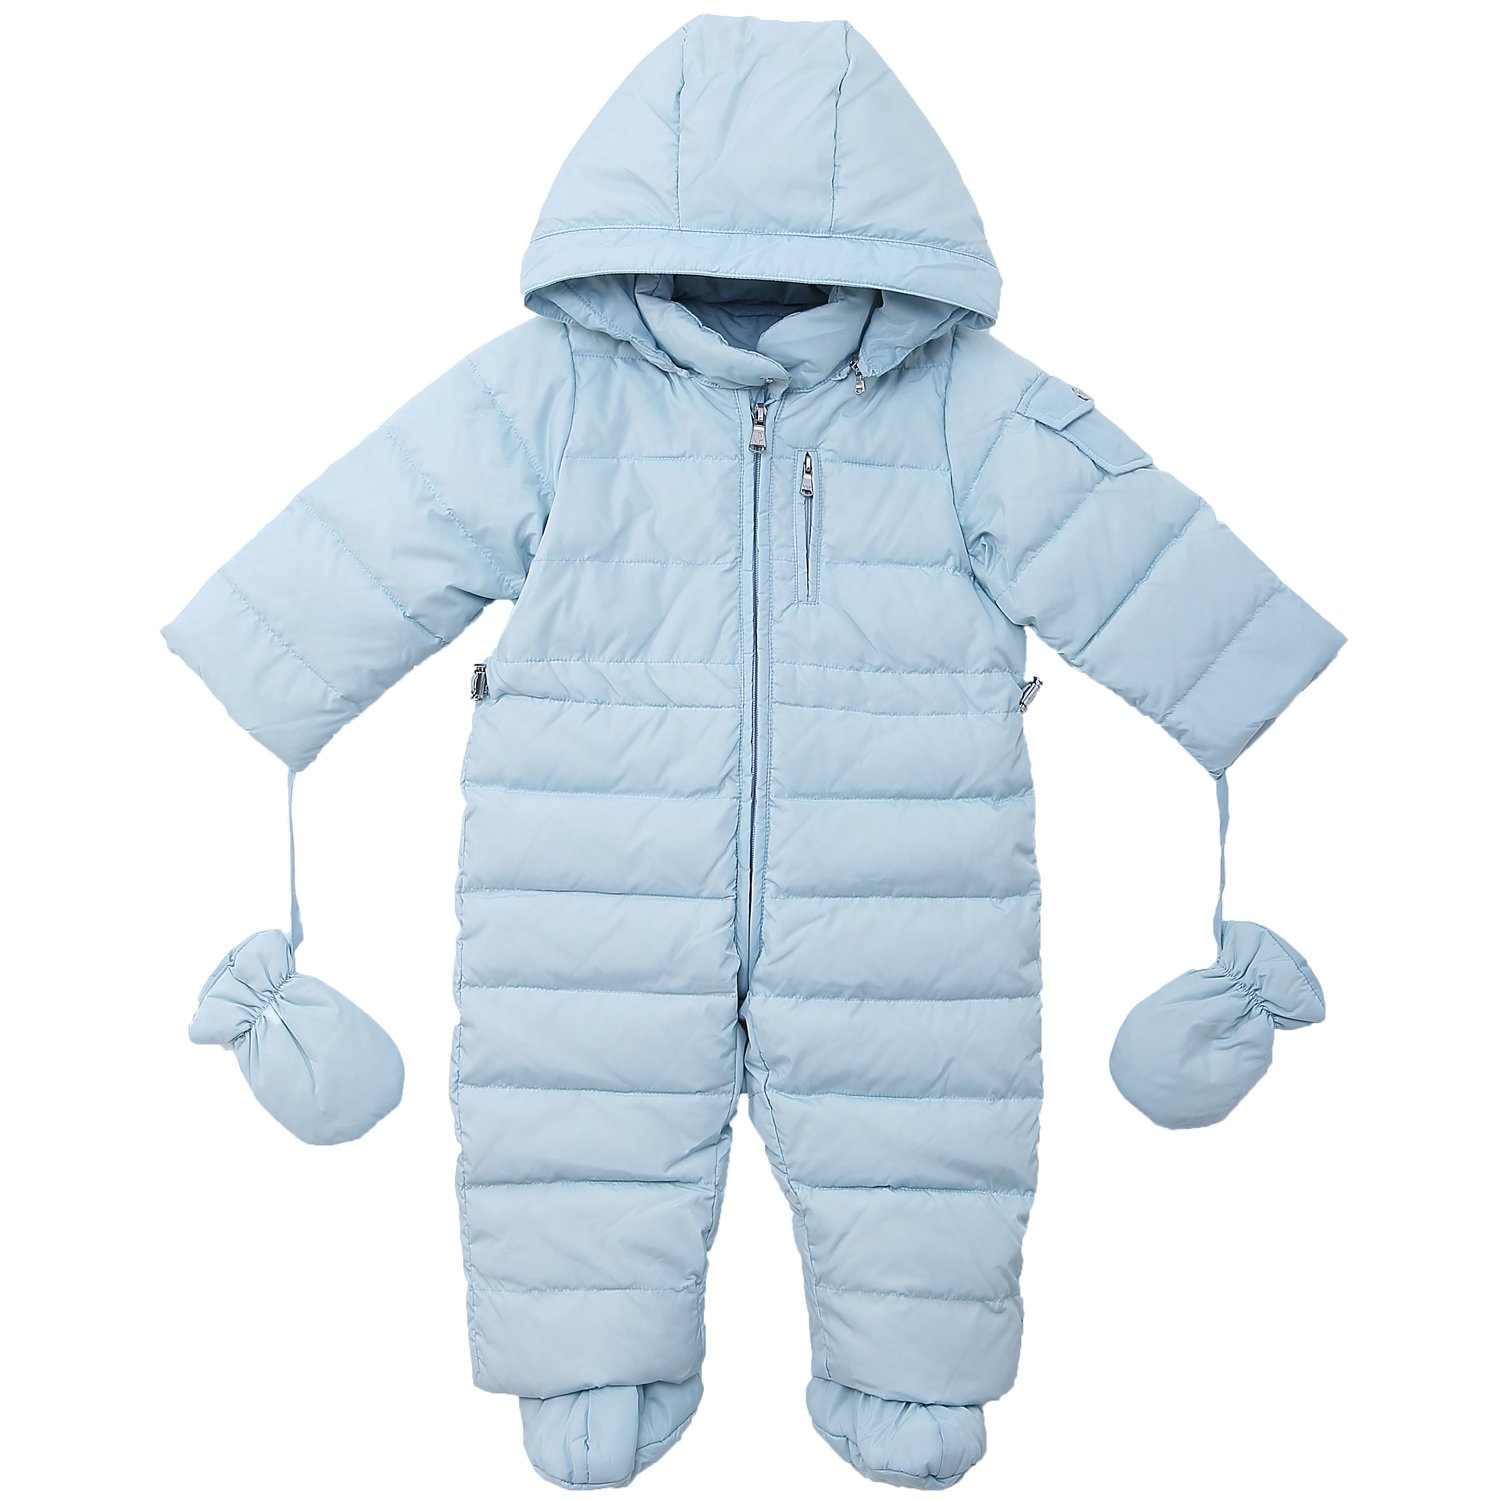 OCEANKIDS Baby Boys' Pram One-Piece Snowsuit Attached Hood 0-24 Months OC14221021